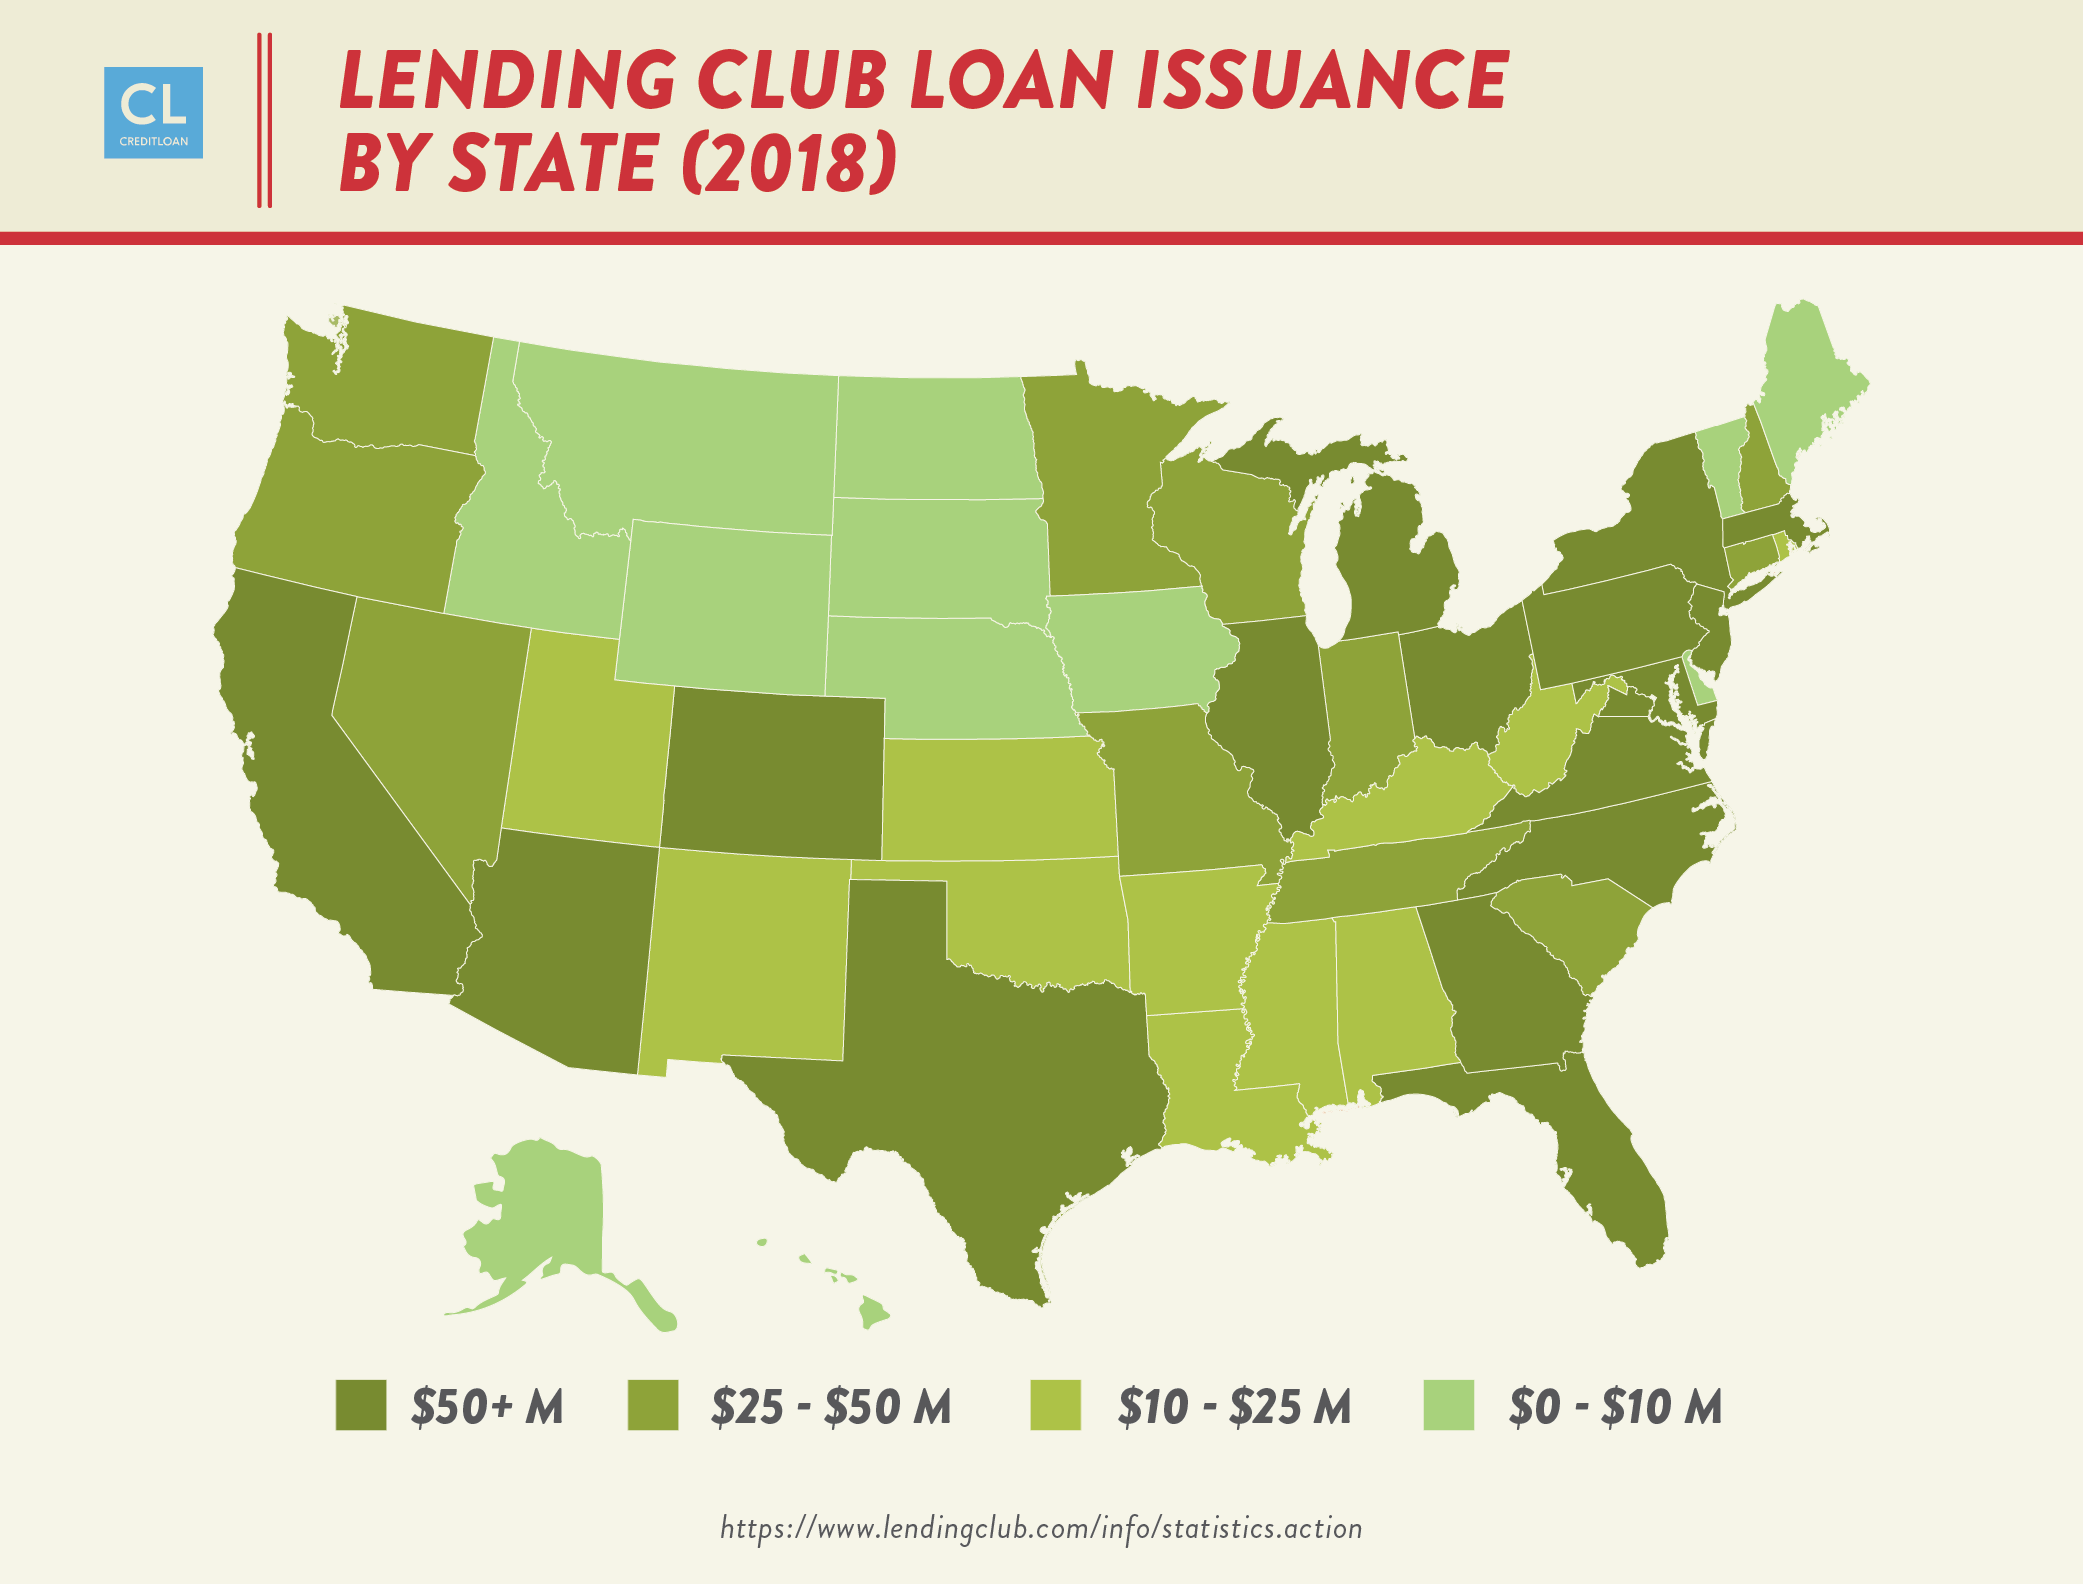 Lending Club Loan Amounts by State 2018